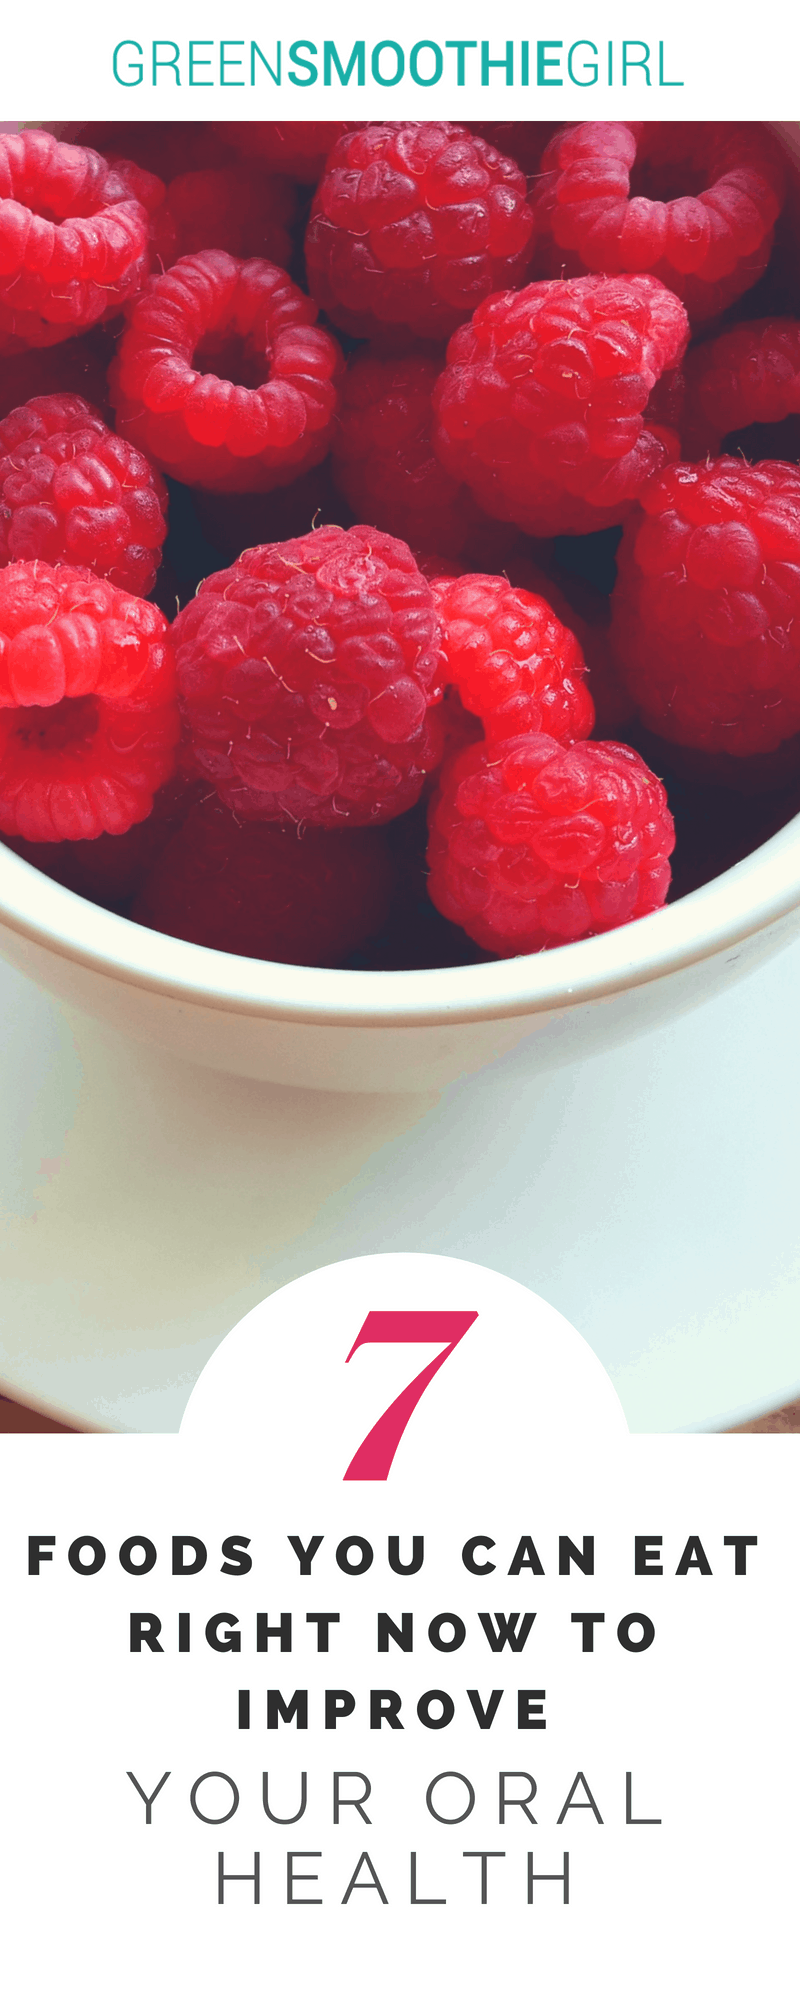 7 Foods for Oral Health | Green Smoothie Girl